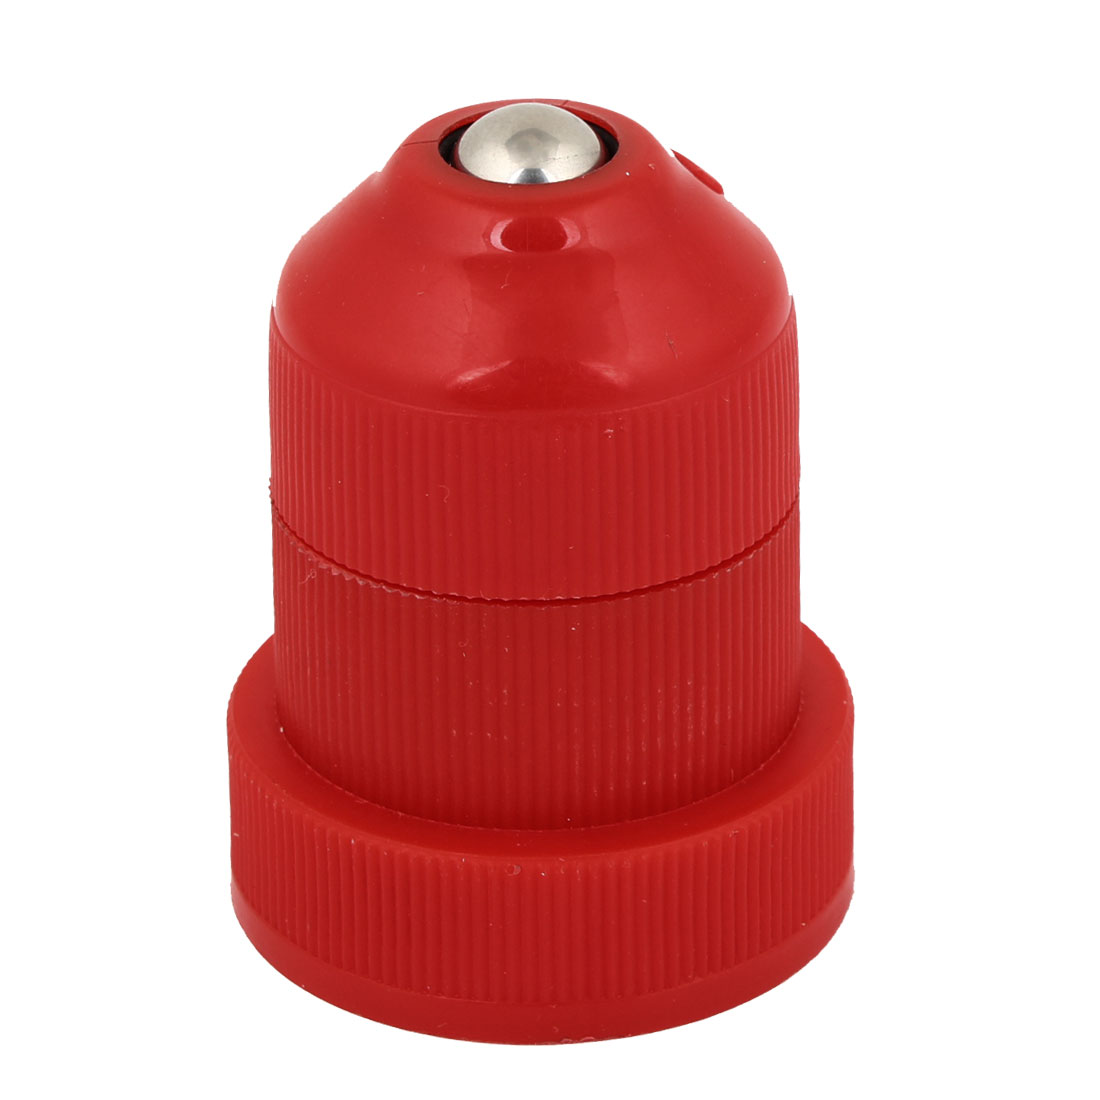 Red Plastic Pets Dog Cat Drinking Water Fountain Feeder Bottle Head